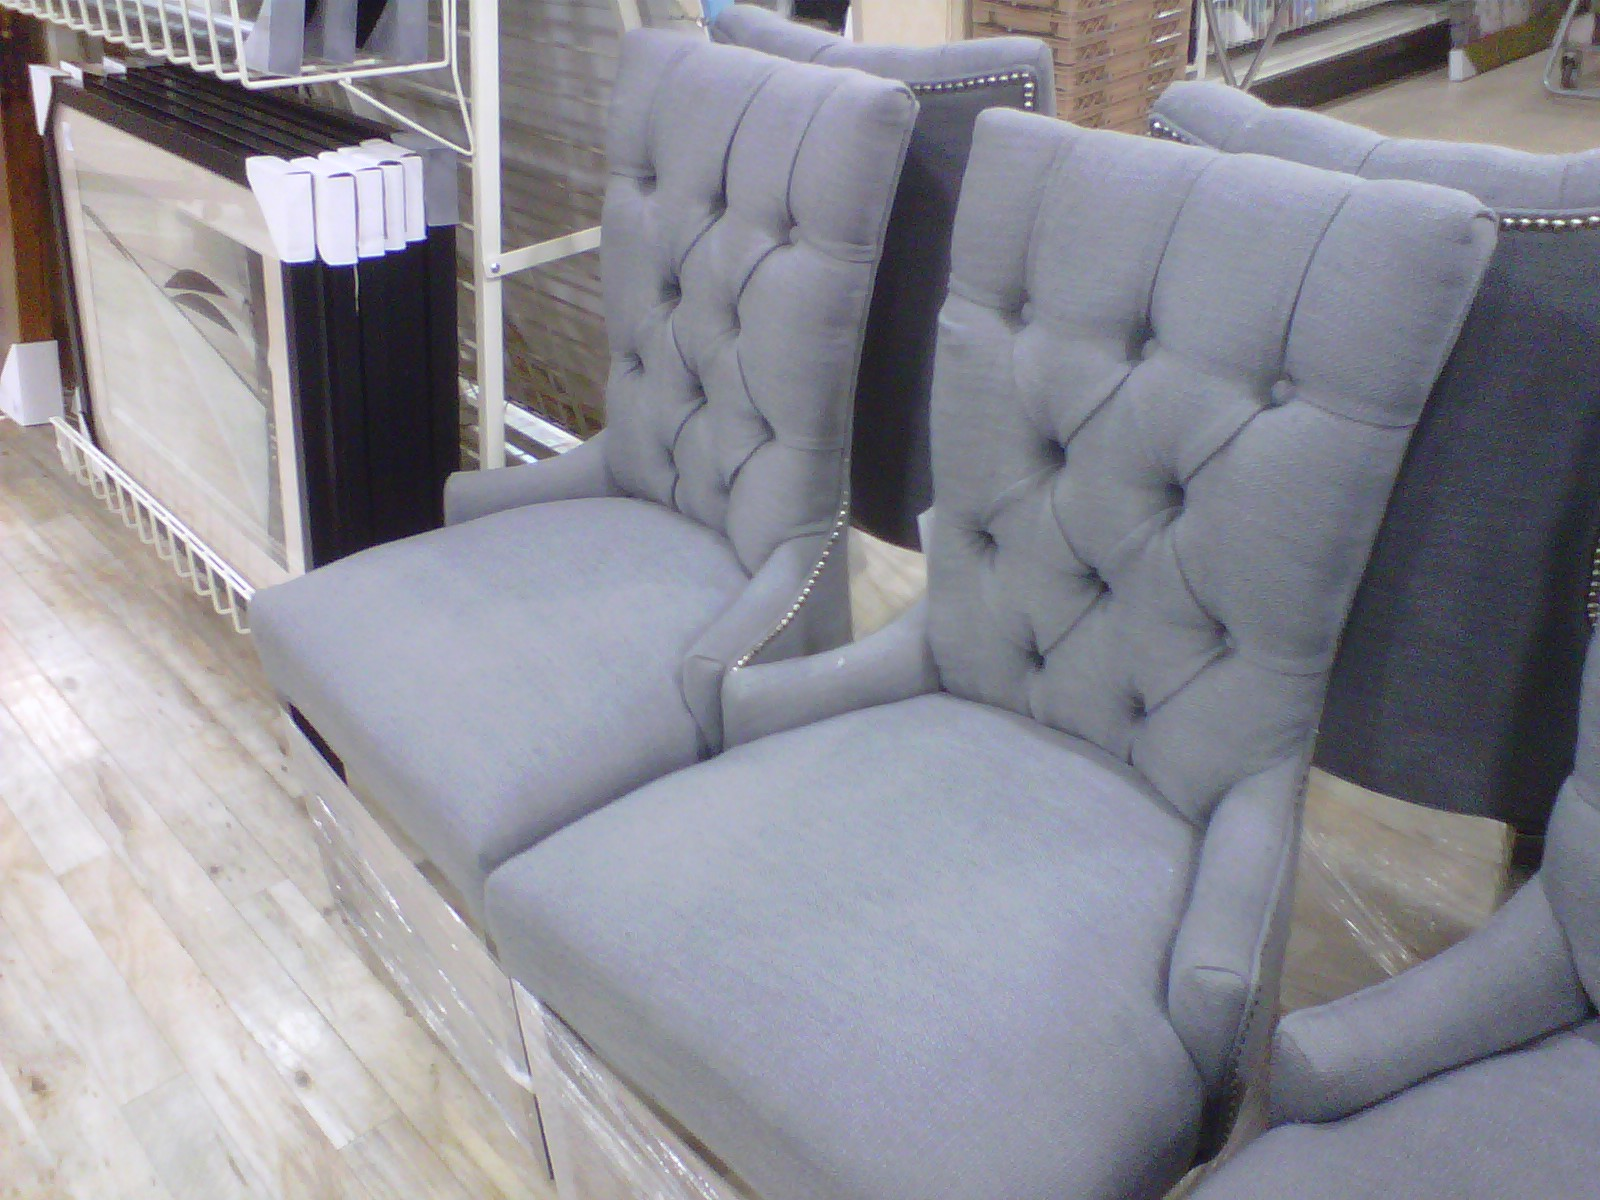 Homesense Accent Chairs Pretty Little Things For Home And Life Homesense Love